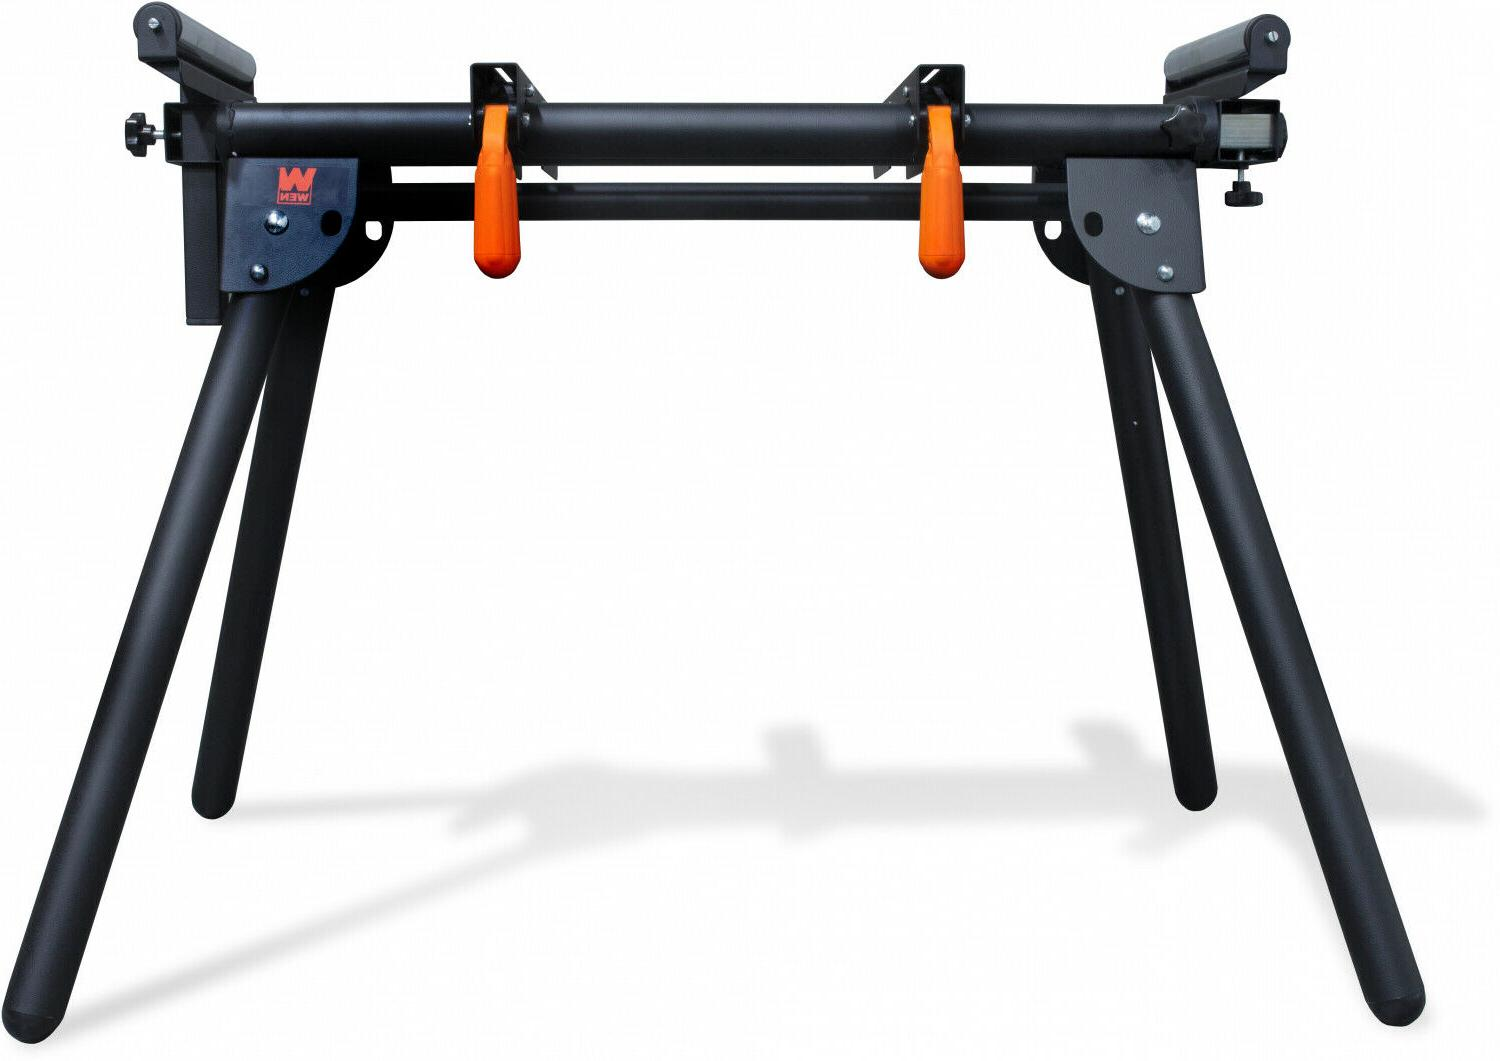 WEN Miter Saw MSA750, lb Adjustable Support Arms